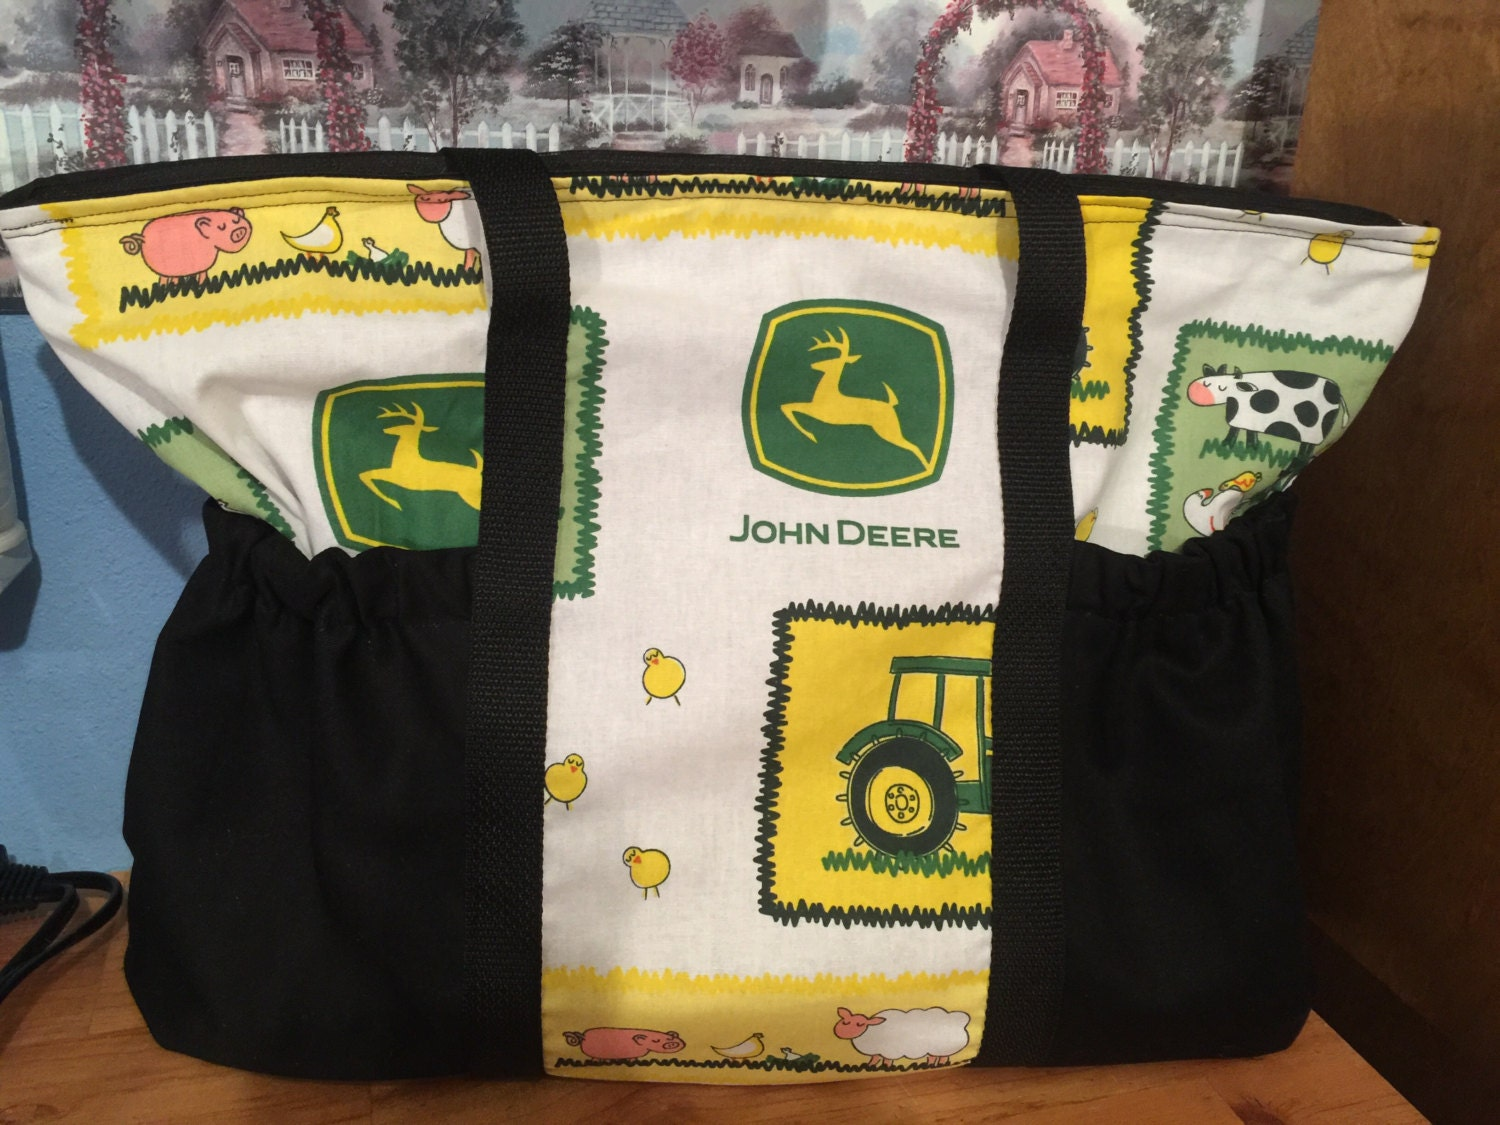 John Deere Diaper Bags : John deere diaper bag can make different prints and colored